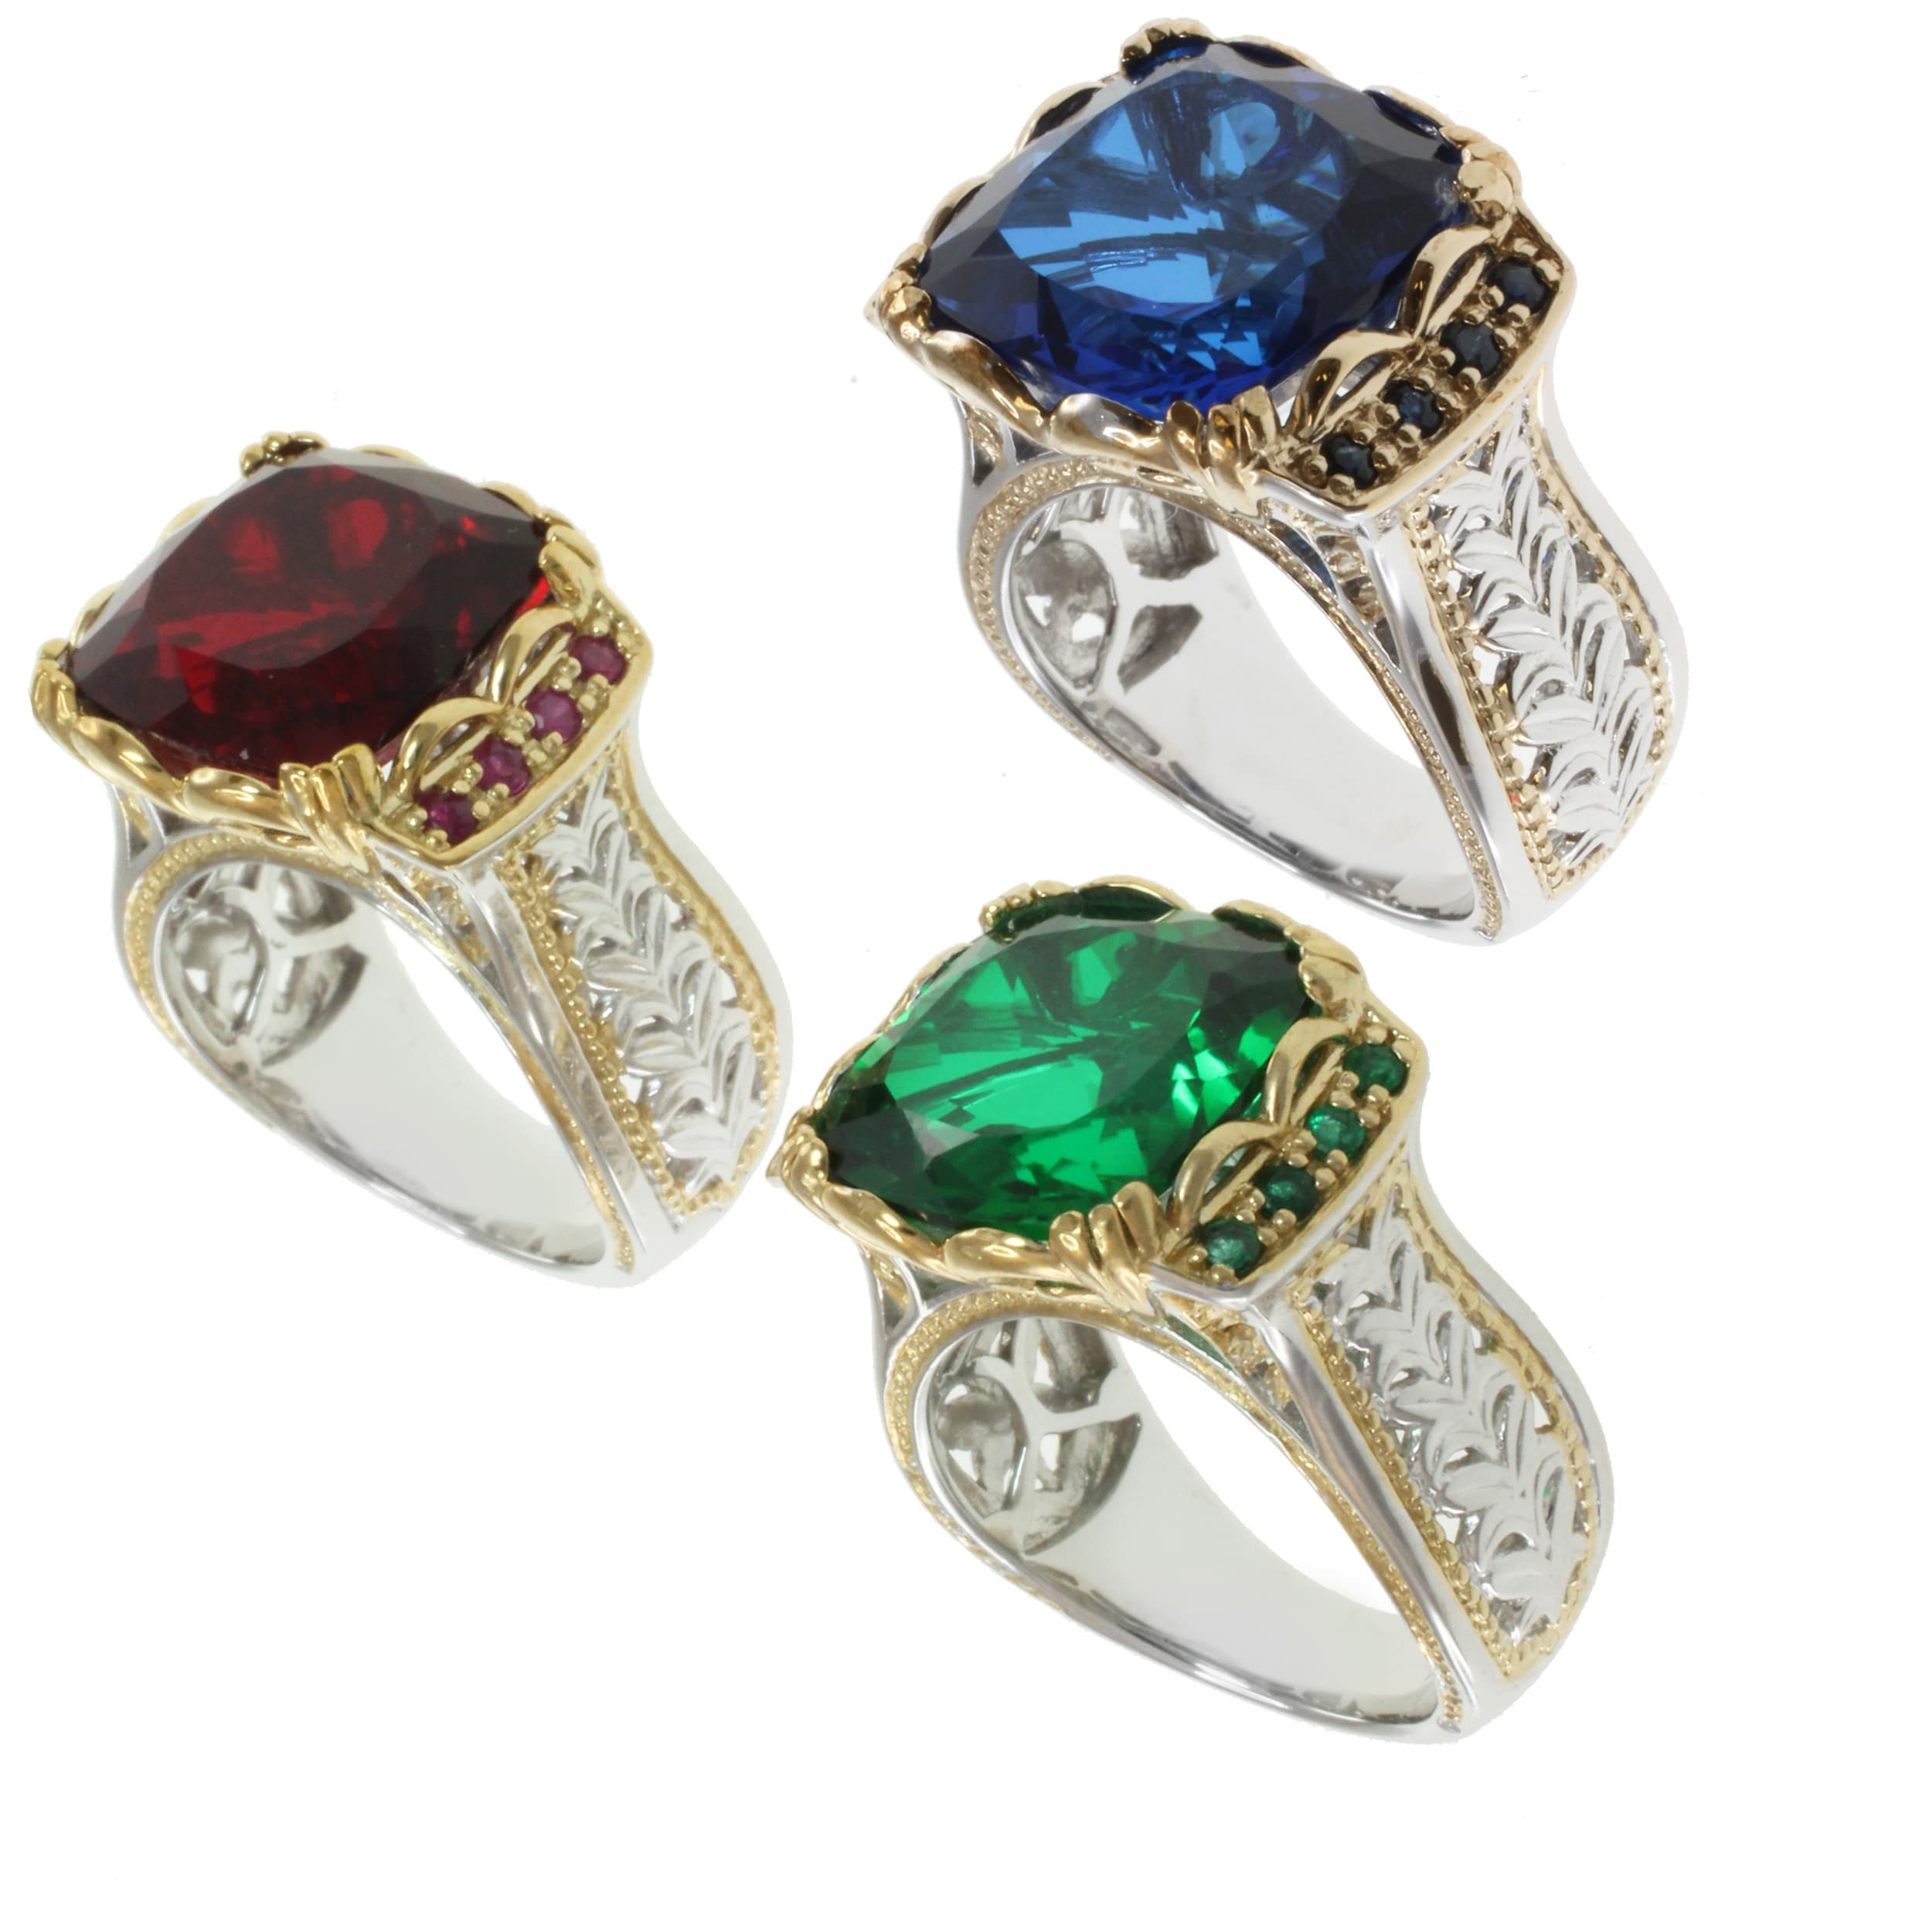 ring designs emerald jennie emeral marquise baguette equilibrium rings products kwon